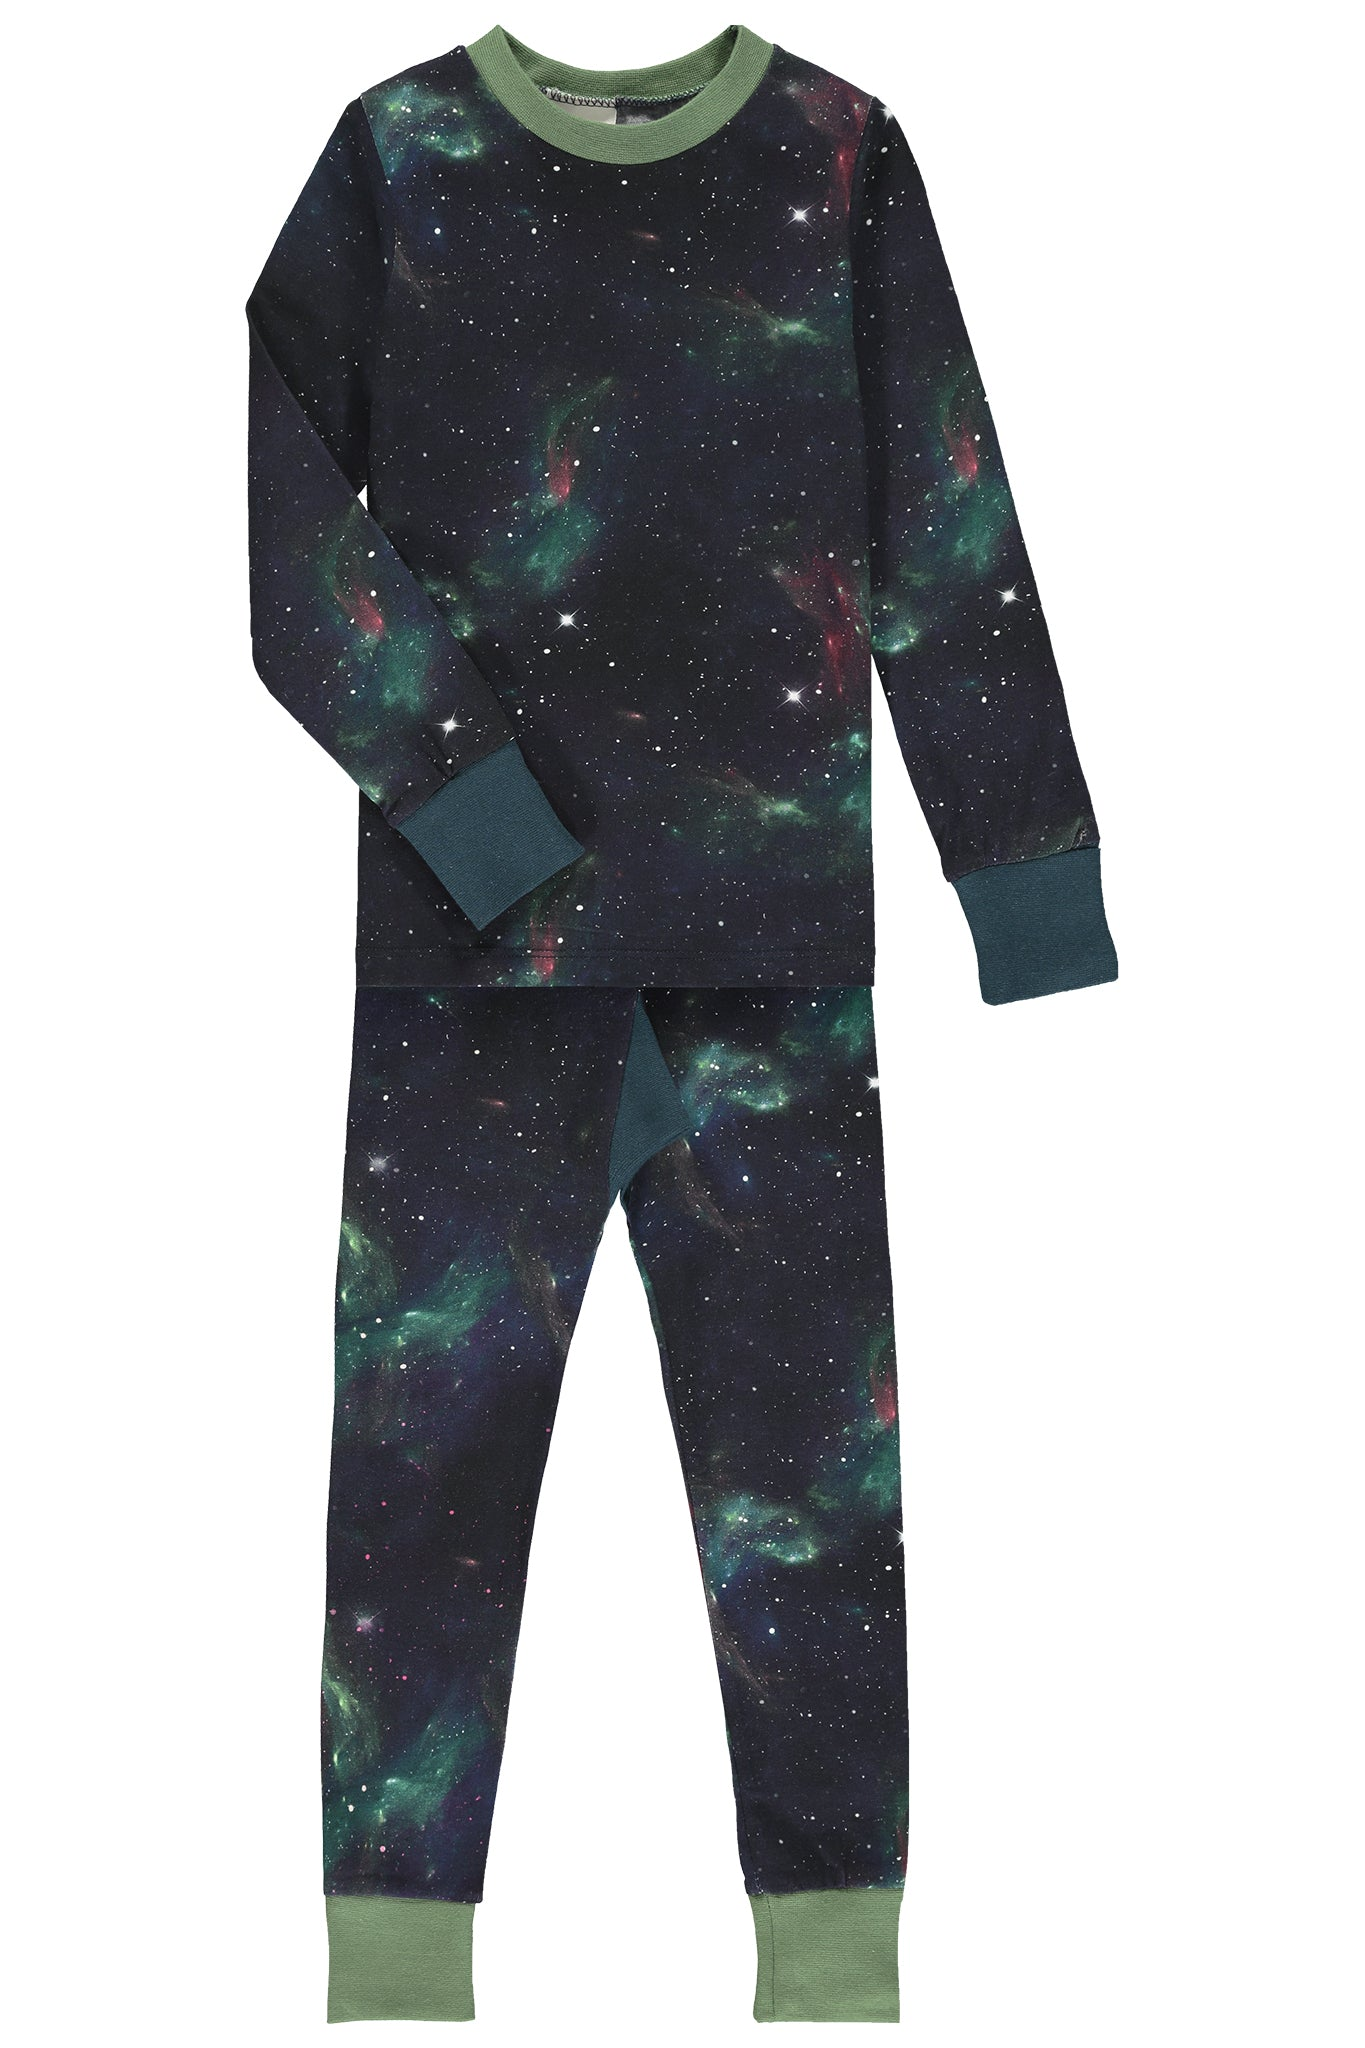 SLIM JYMS PYJAMAS - GALAXY PRINT